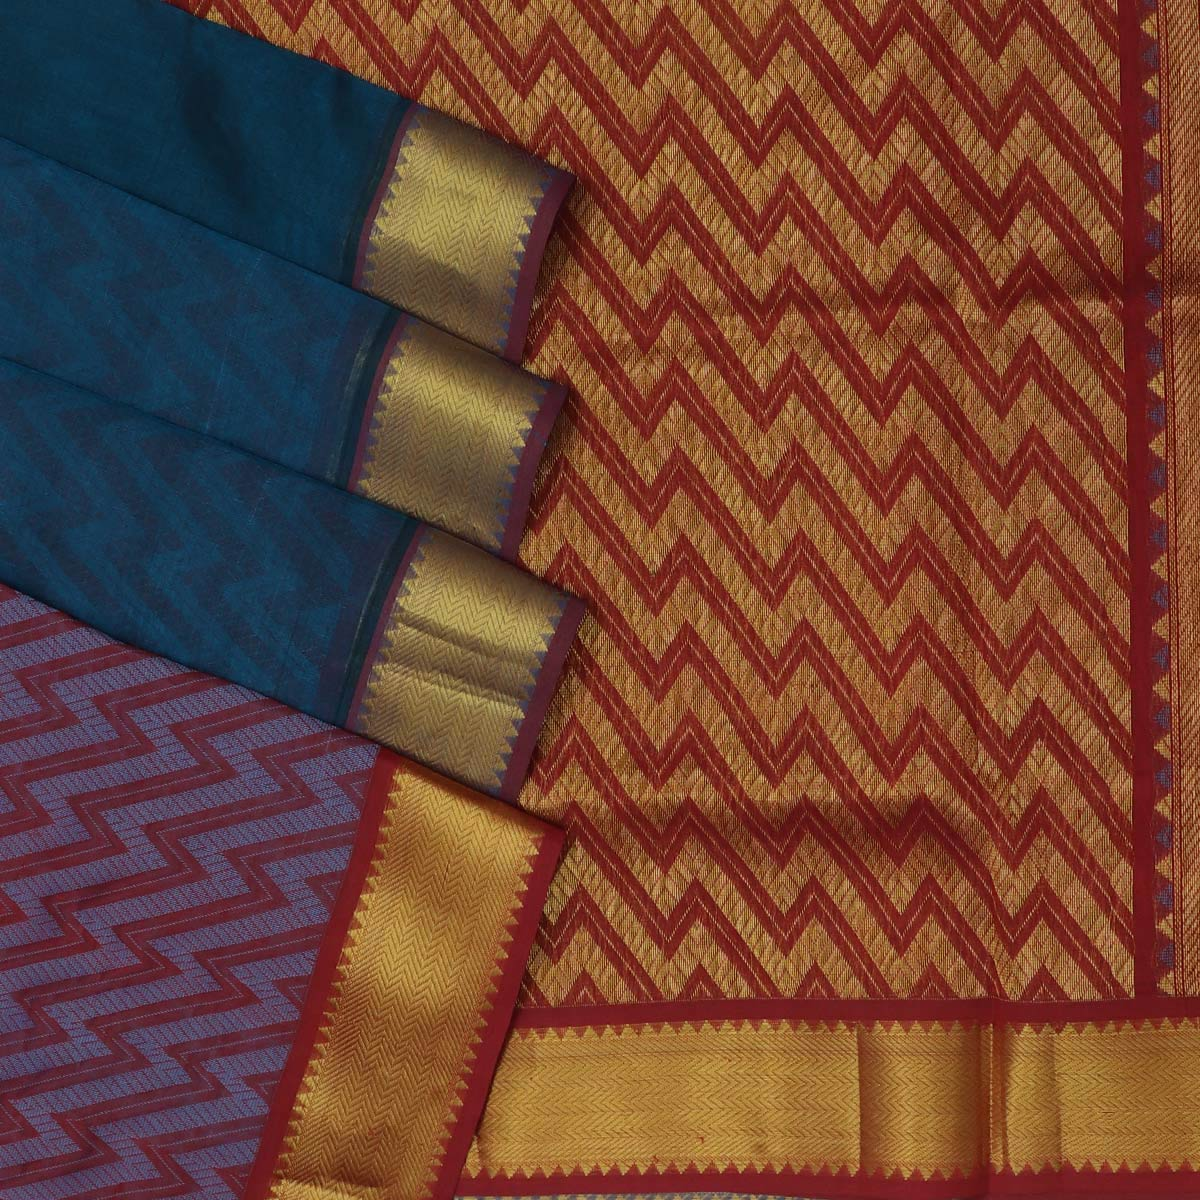 Silk Cotton Saree - Peacock blue and Maroon with Temple zari border partly